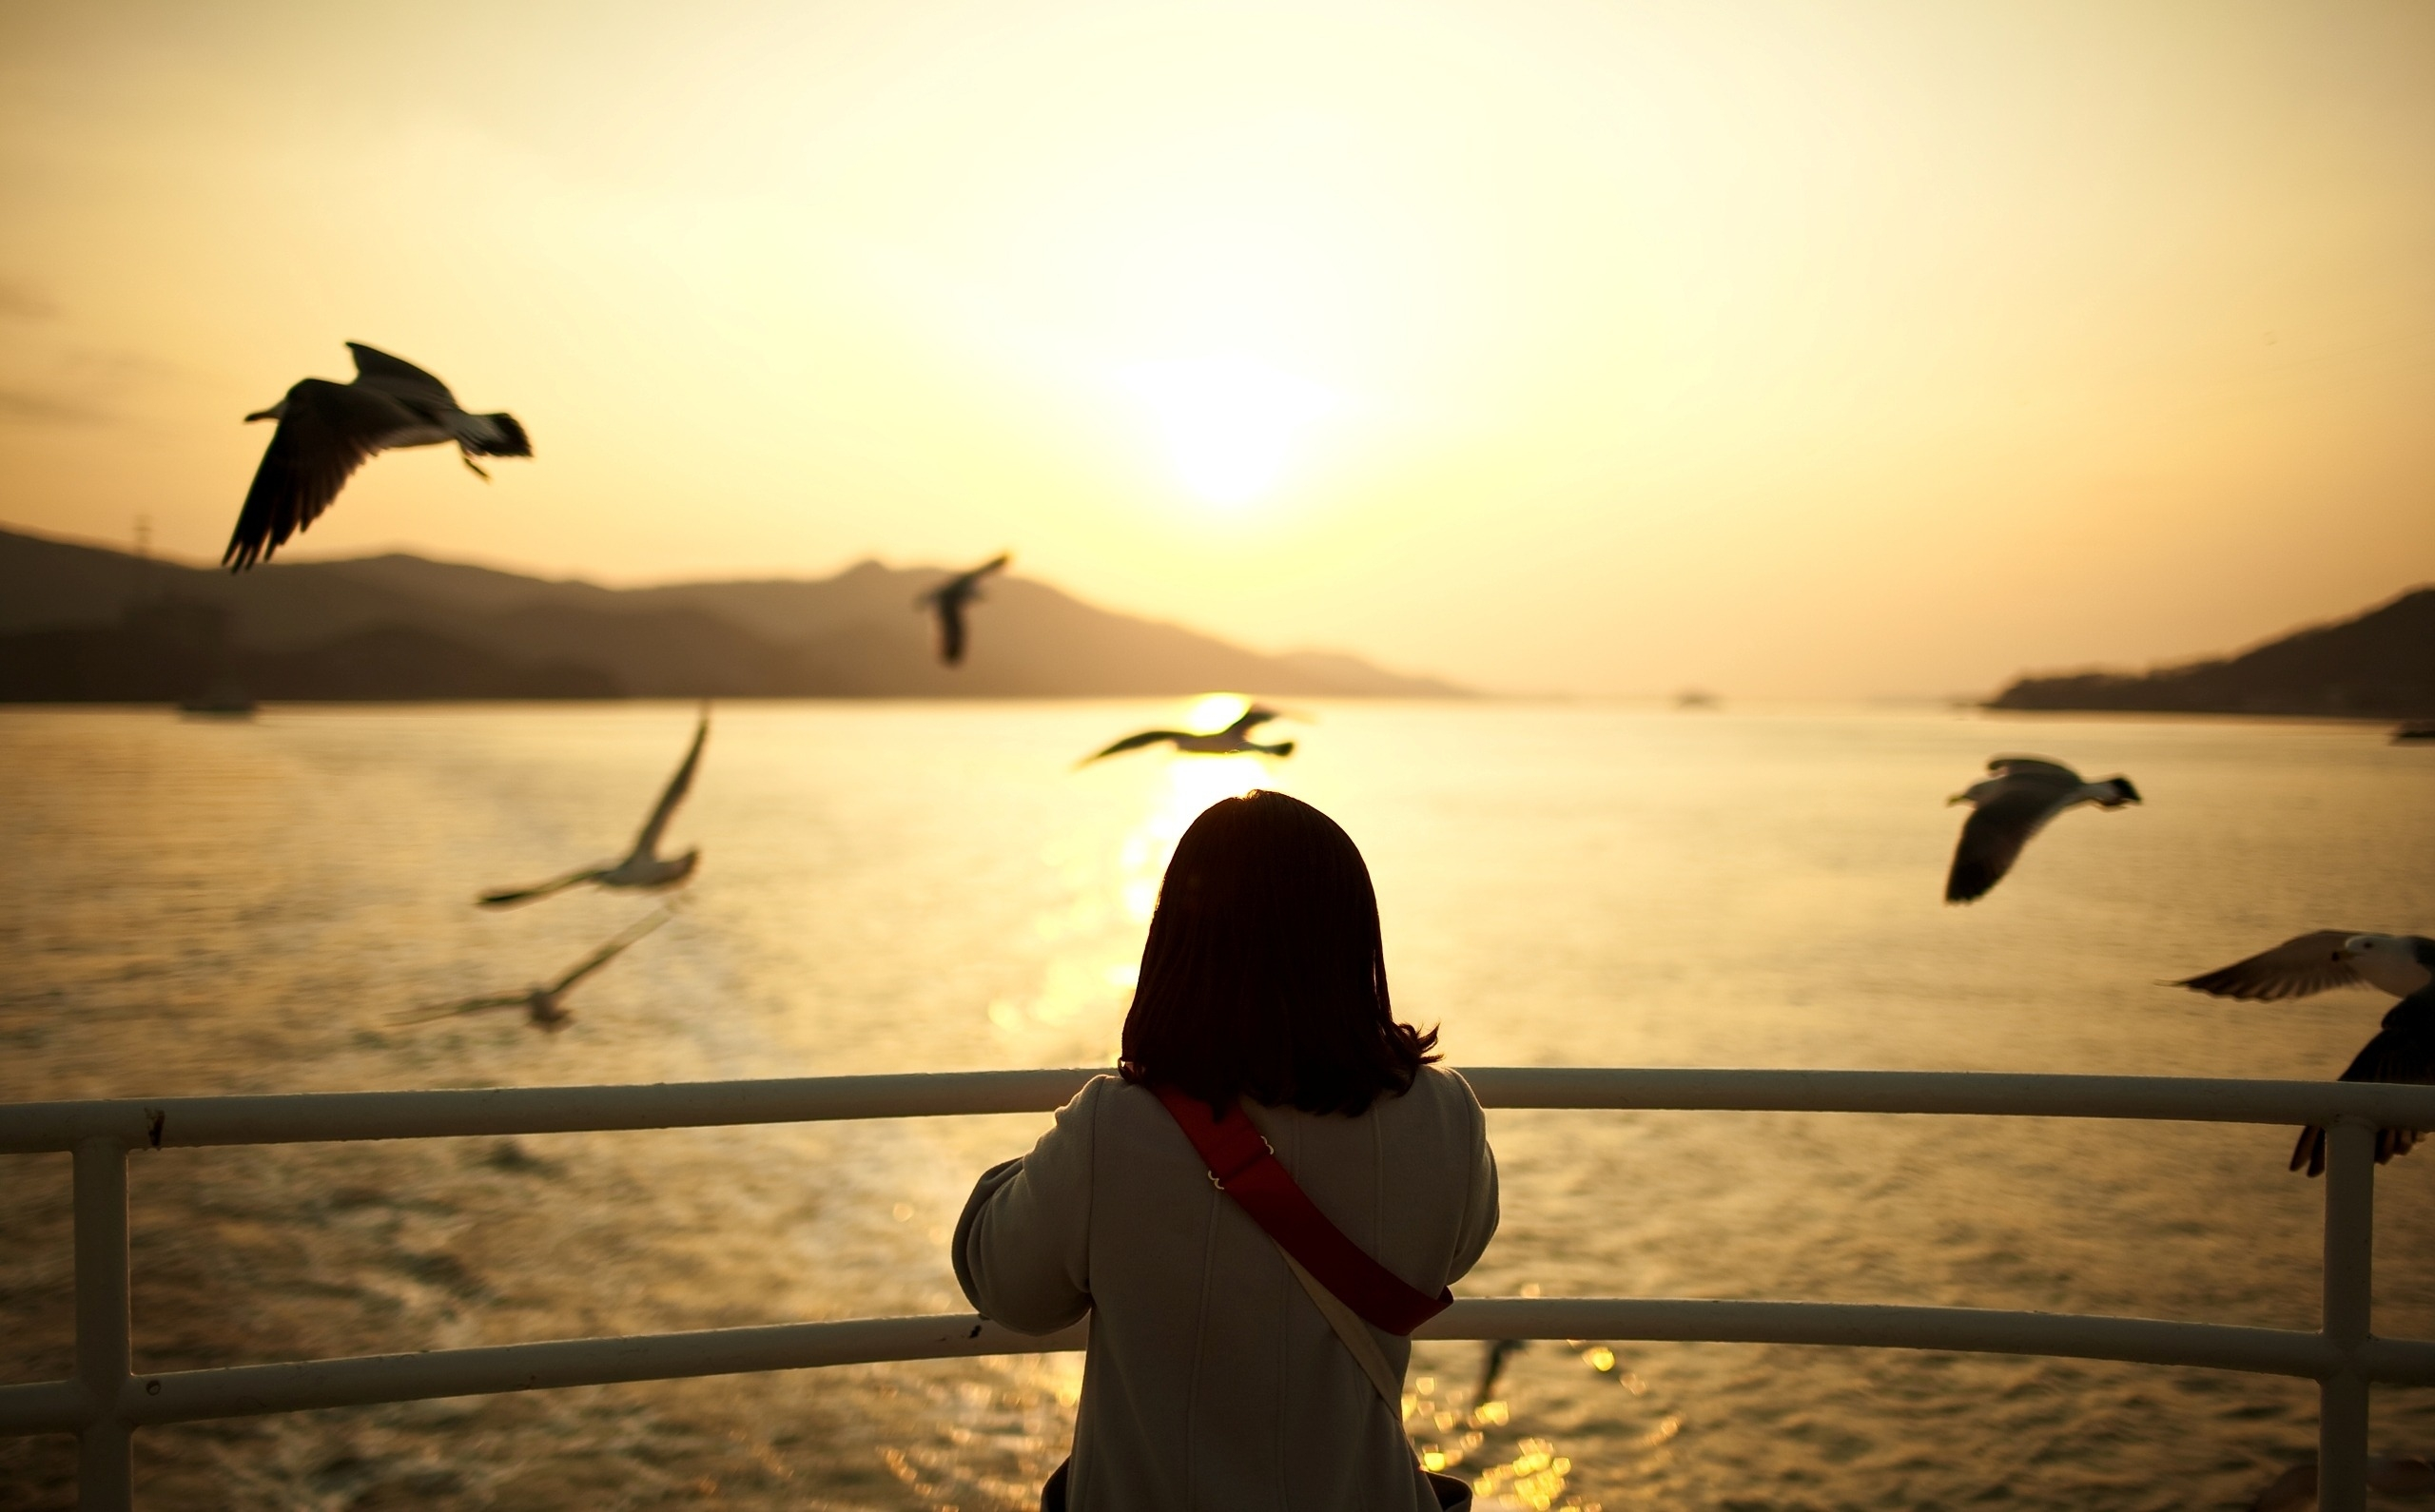 141834 download wallpaper Miscellanea, Miscellaneous, Girl, Ship, Swimming, Sunset, Sun, Landscape, Seagulls screensavers and pictures for free